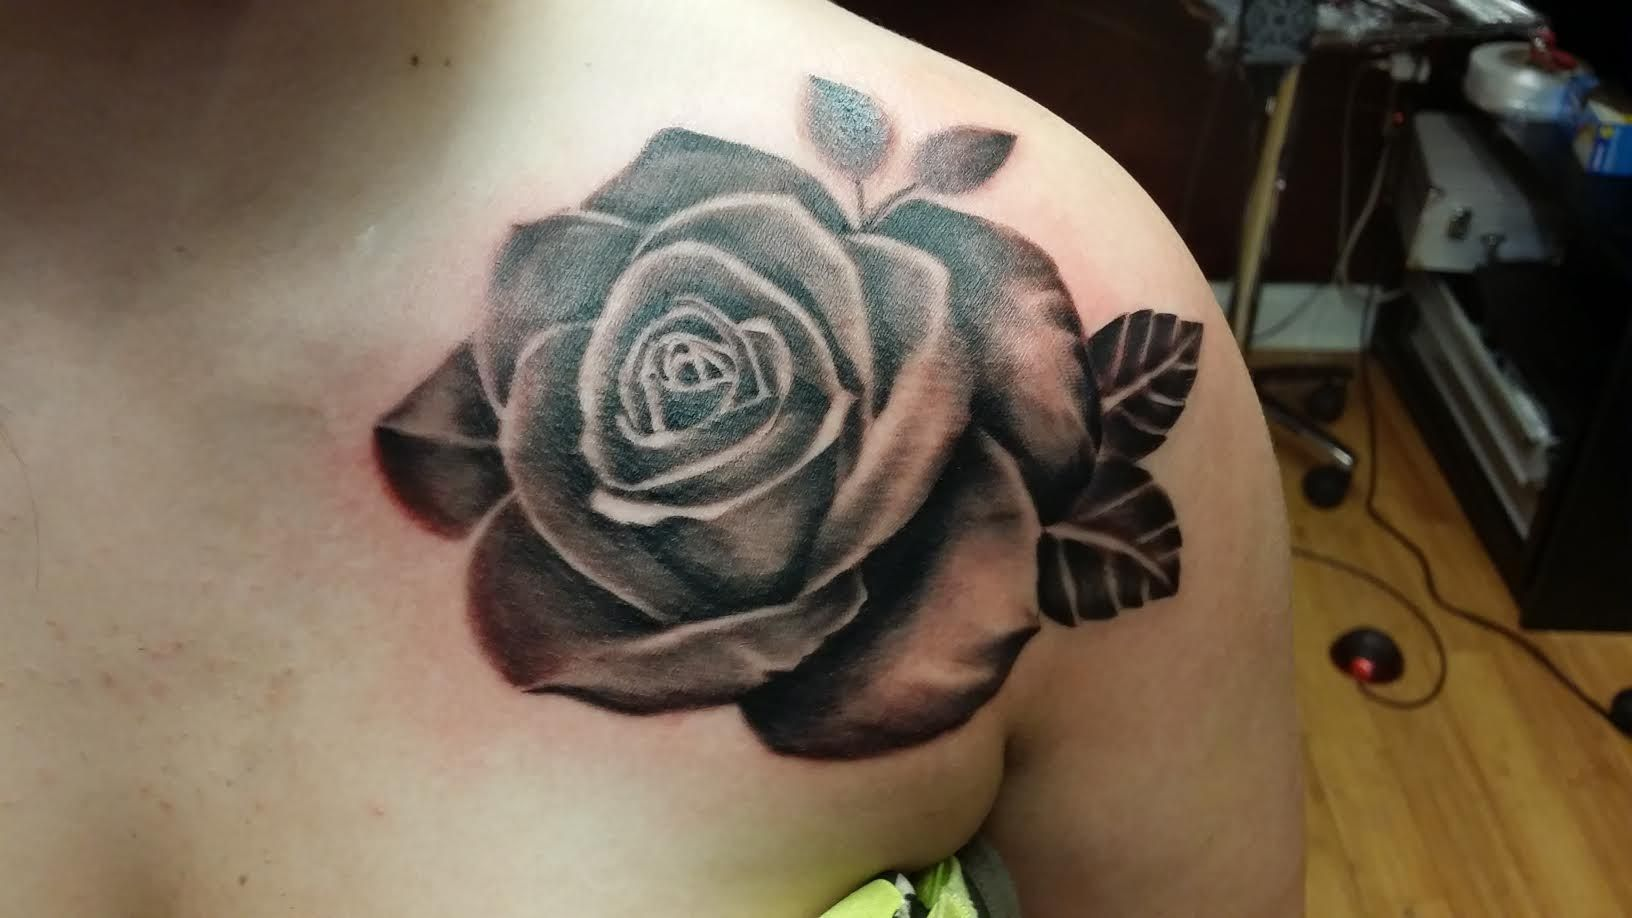 Beautiful Black And Grey Rose Tattoo Female Chest Shoulder Tattoos For Women Tattoos And Piercings Tattoos